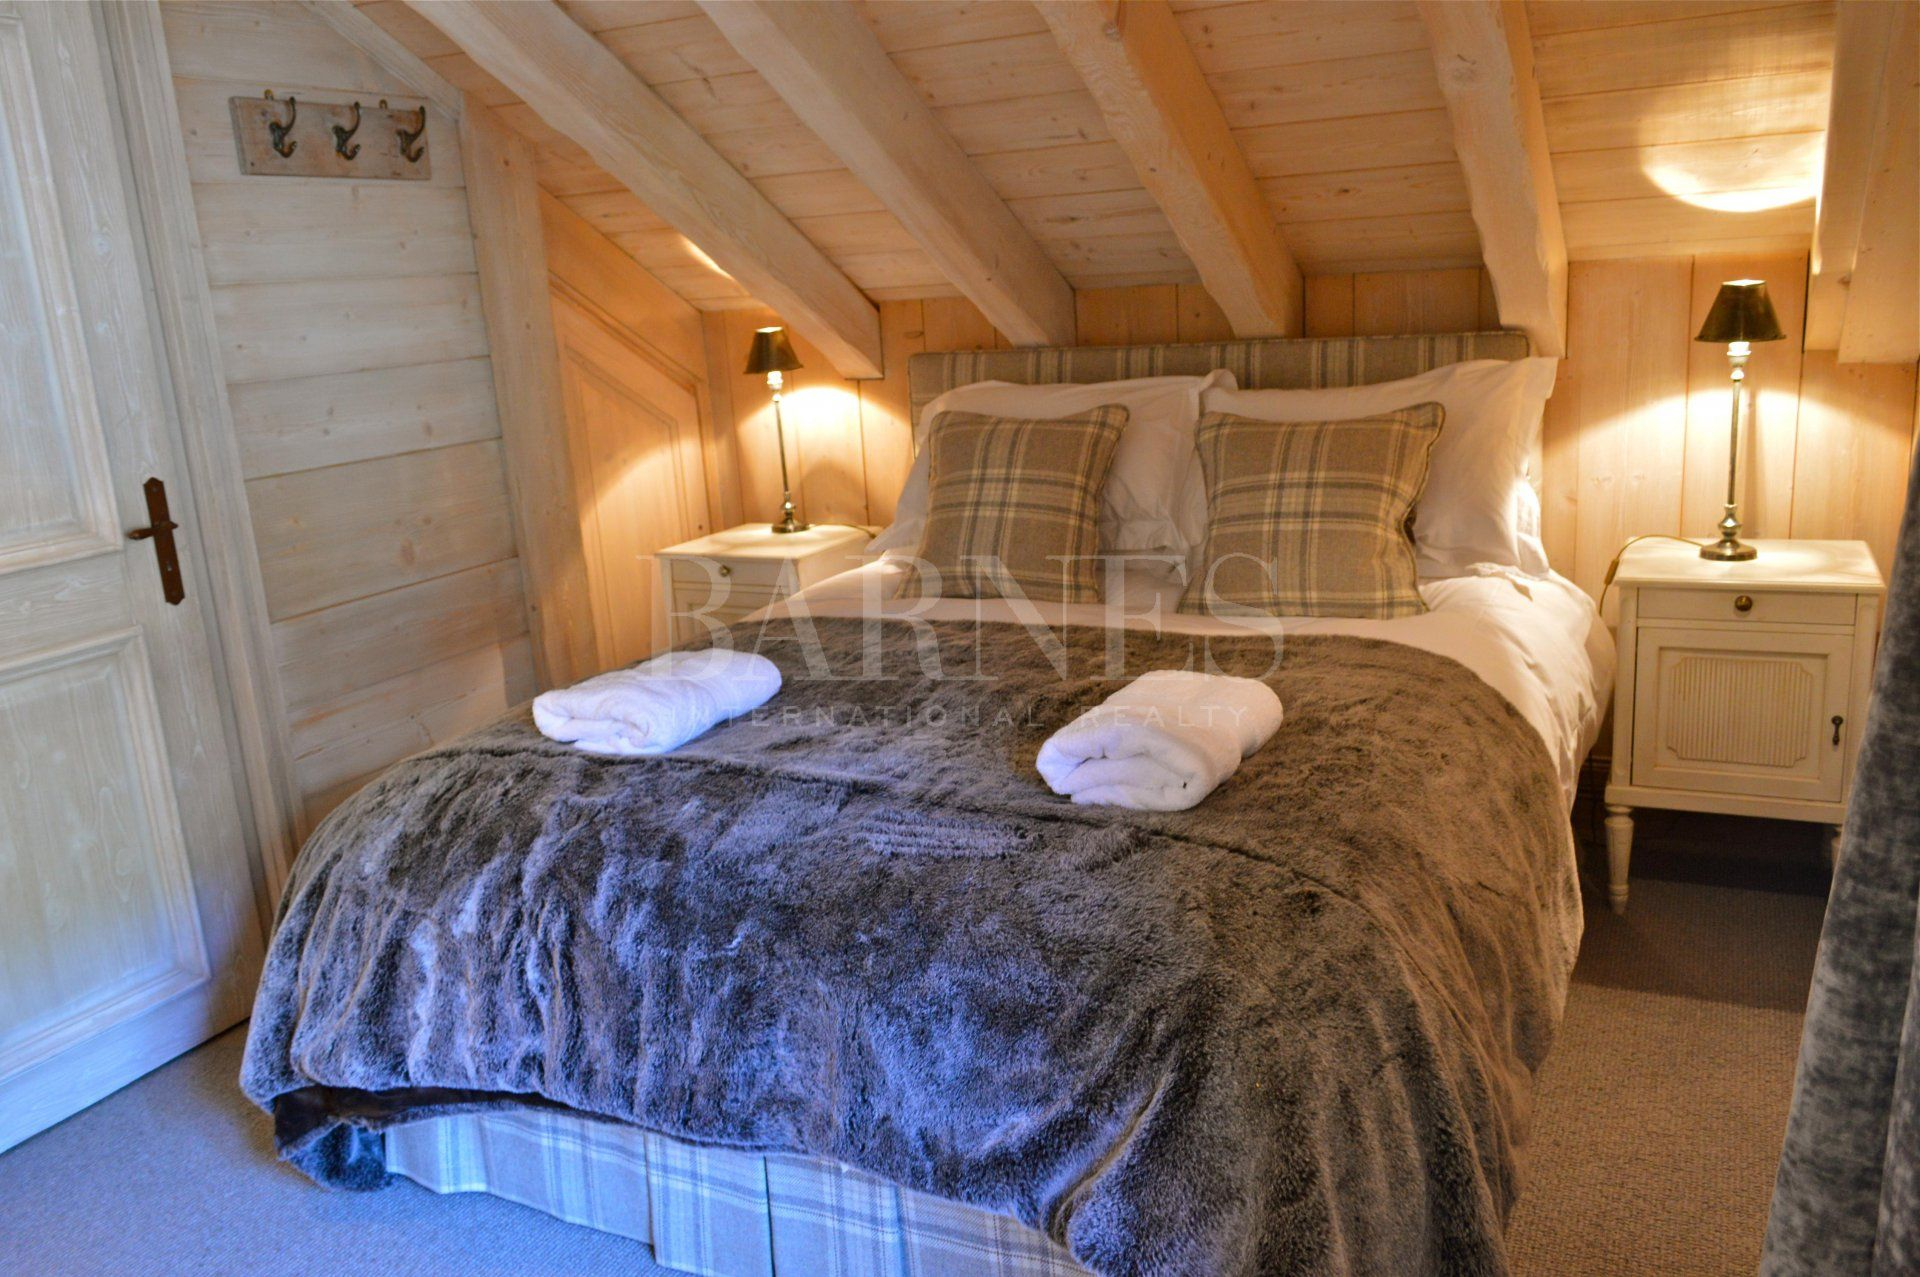 Large luxury chalet-style apartment for rent in the heart of Meribel - the 3 Valleys